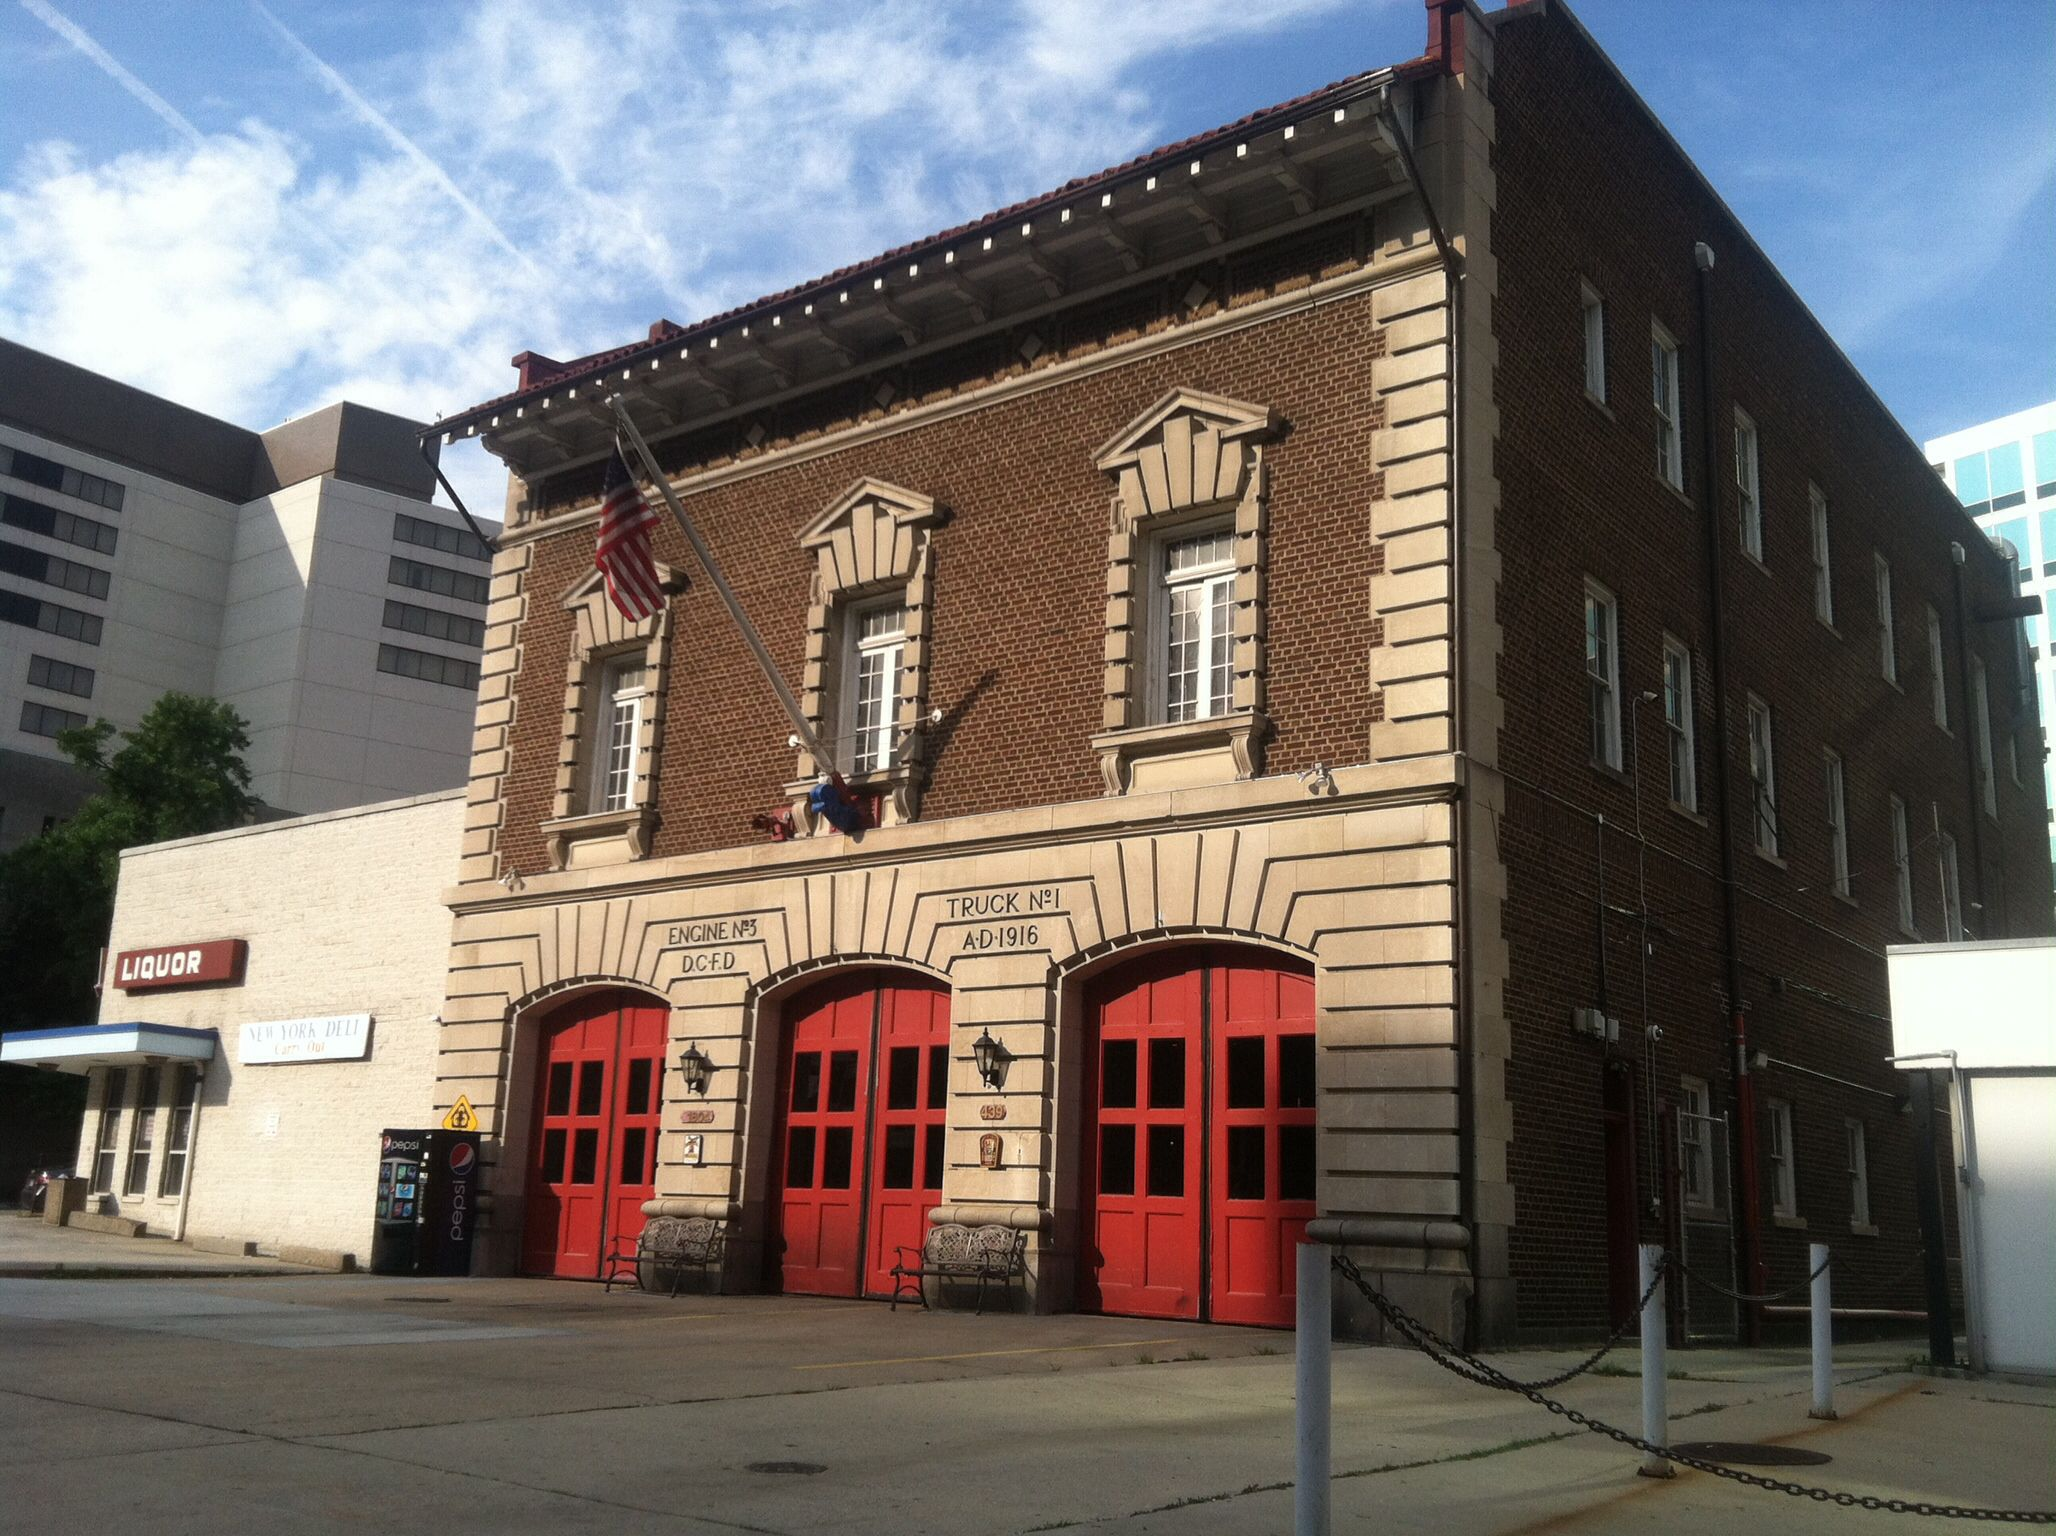 DCFD Engine 3, Ambulance 3 and the Fire Museum on the